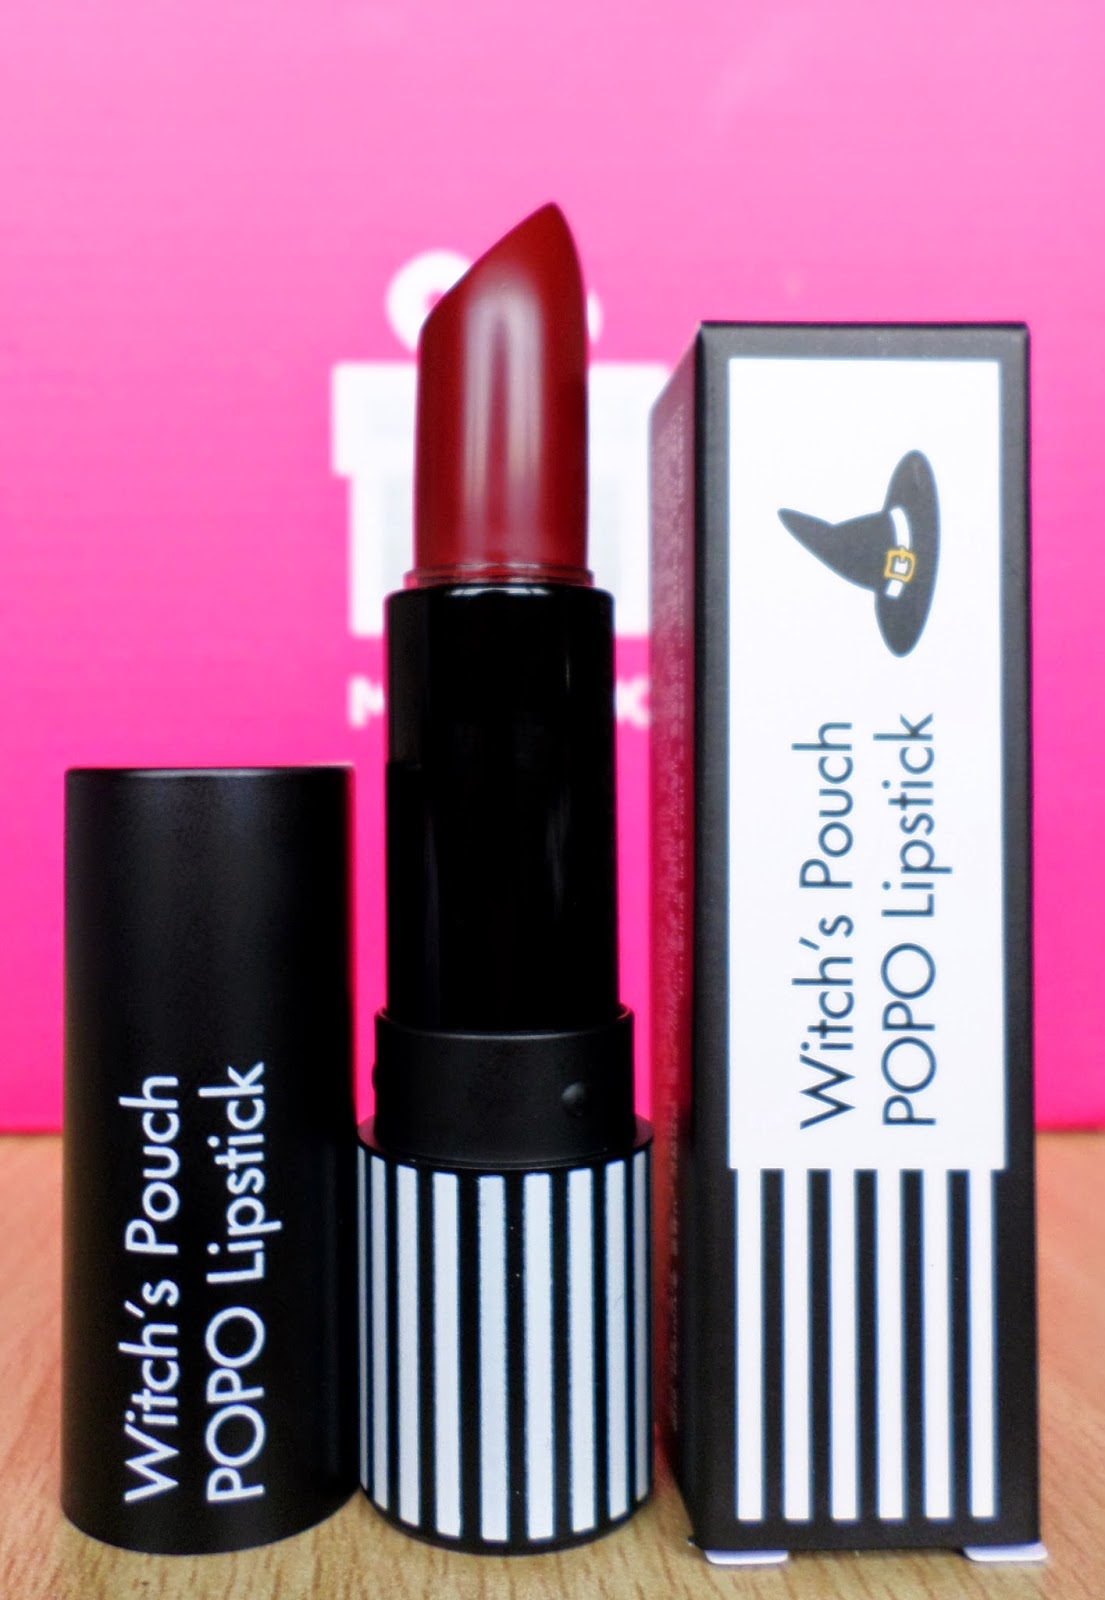 Witch's Pouch POPO Lipstick Burgundy Wine 19g rrp $12 Bullet